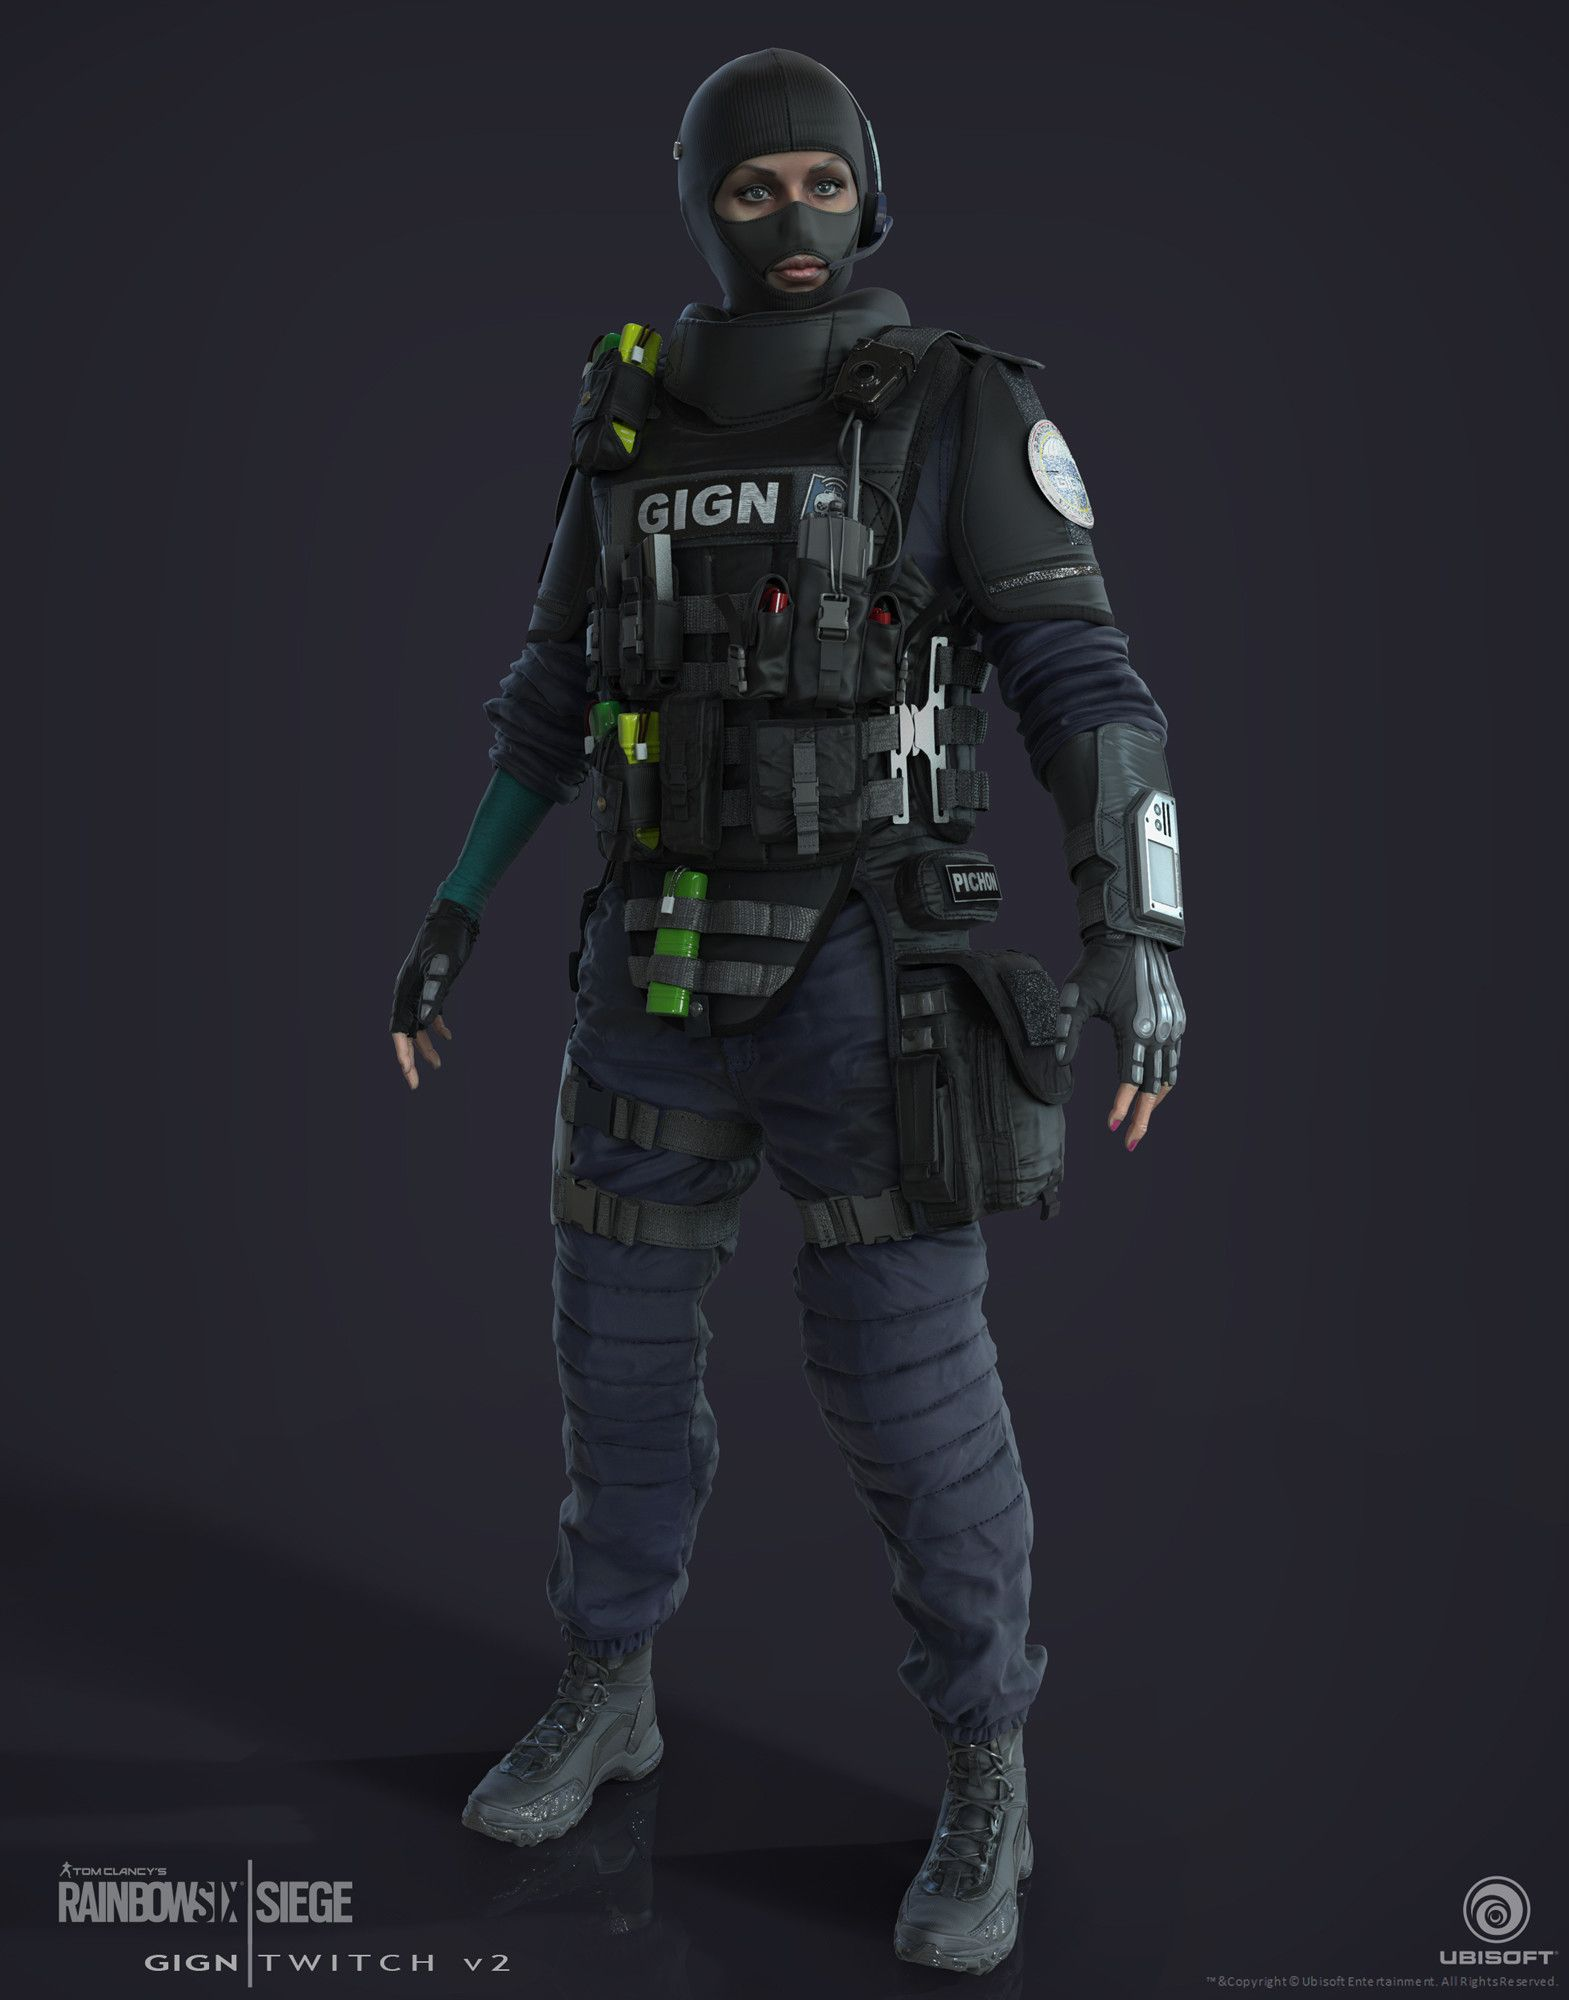 Gign Doc Ctu Operator I Made For Rainbow 6 Siege Special Thanks